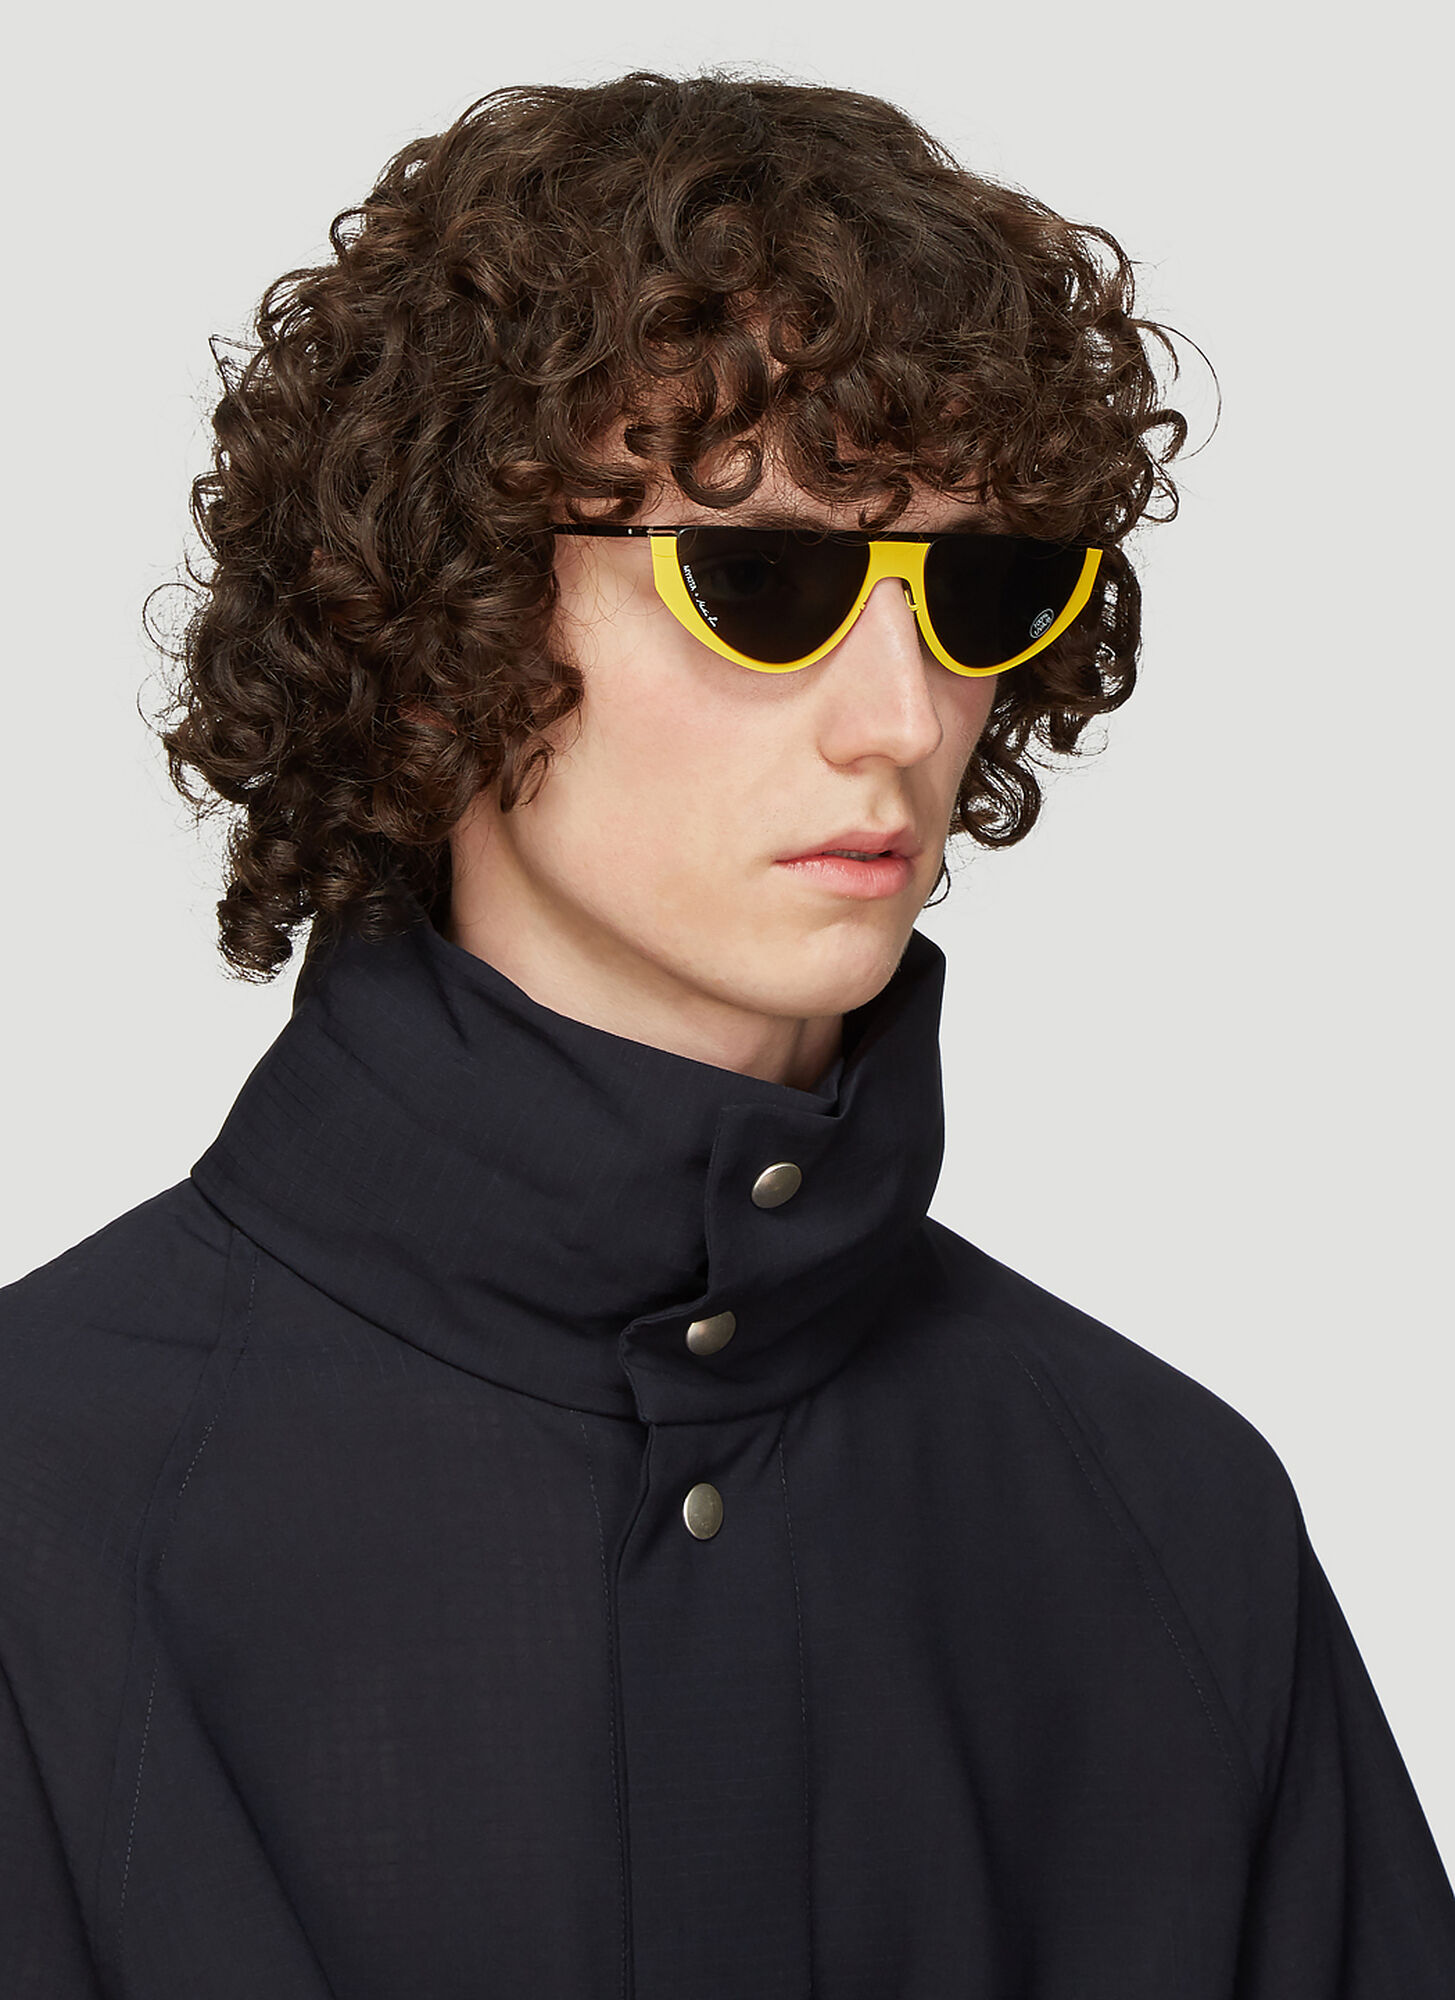 Mykita X Martine Rose Selina Sunglasses in Yellow size One Size